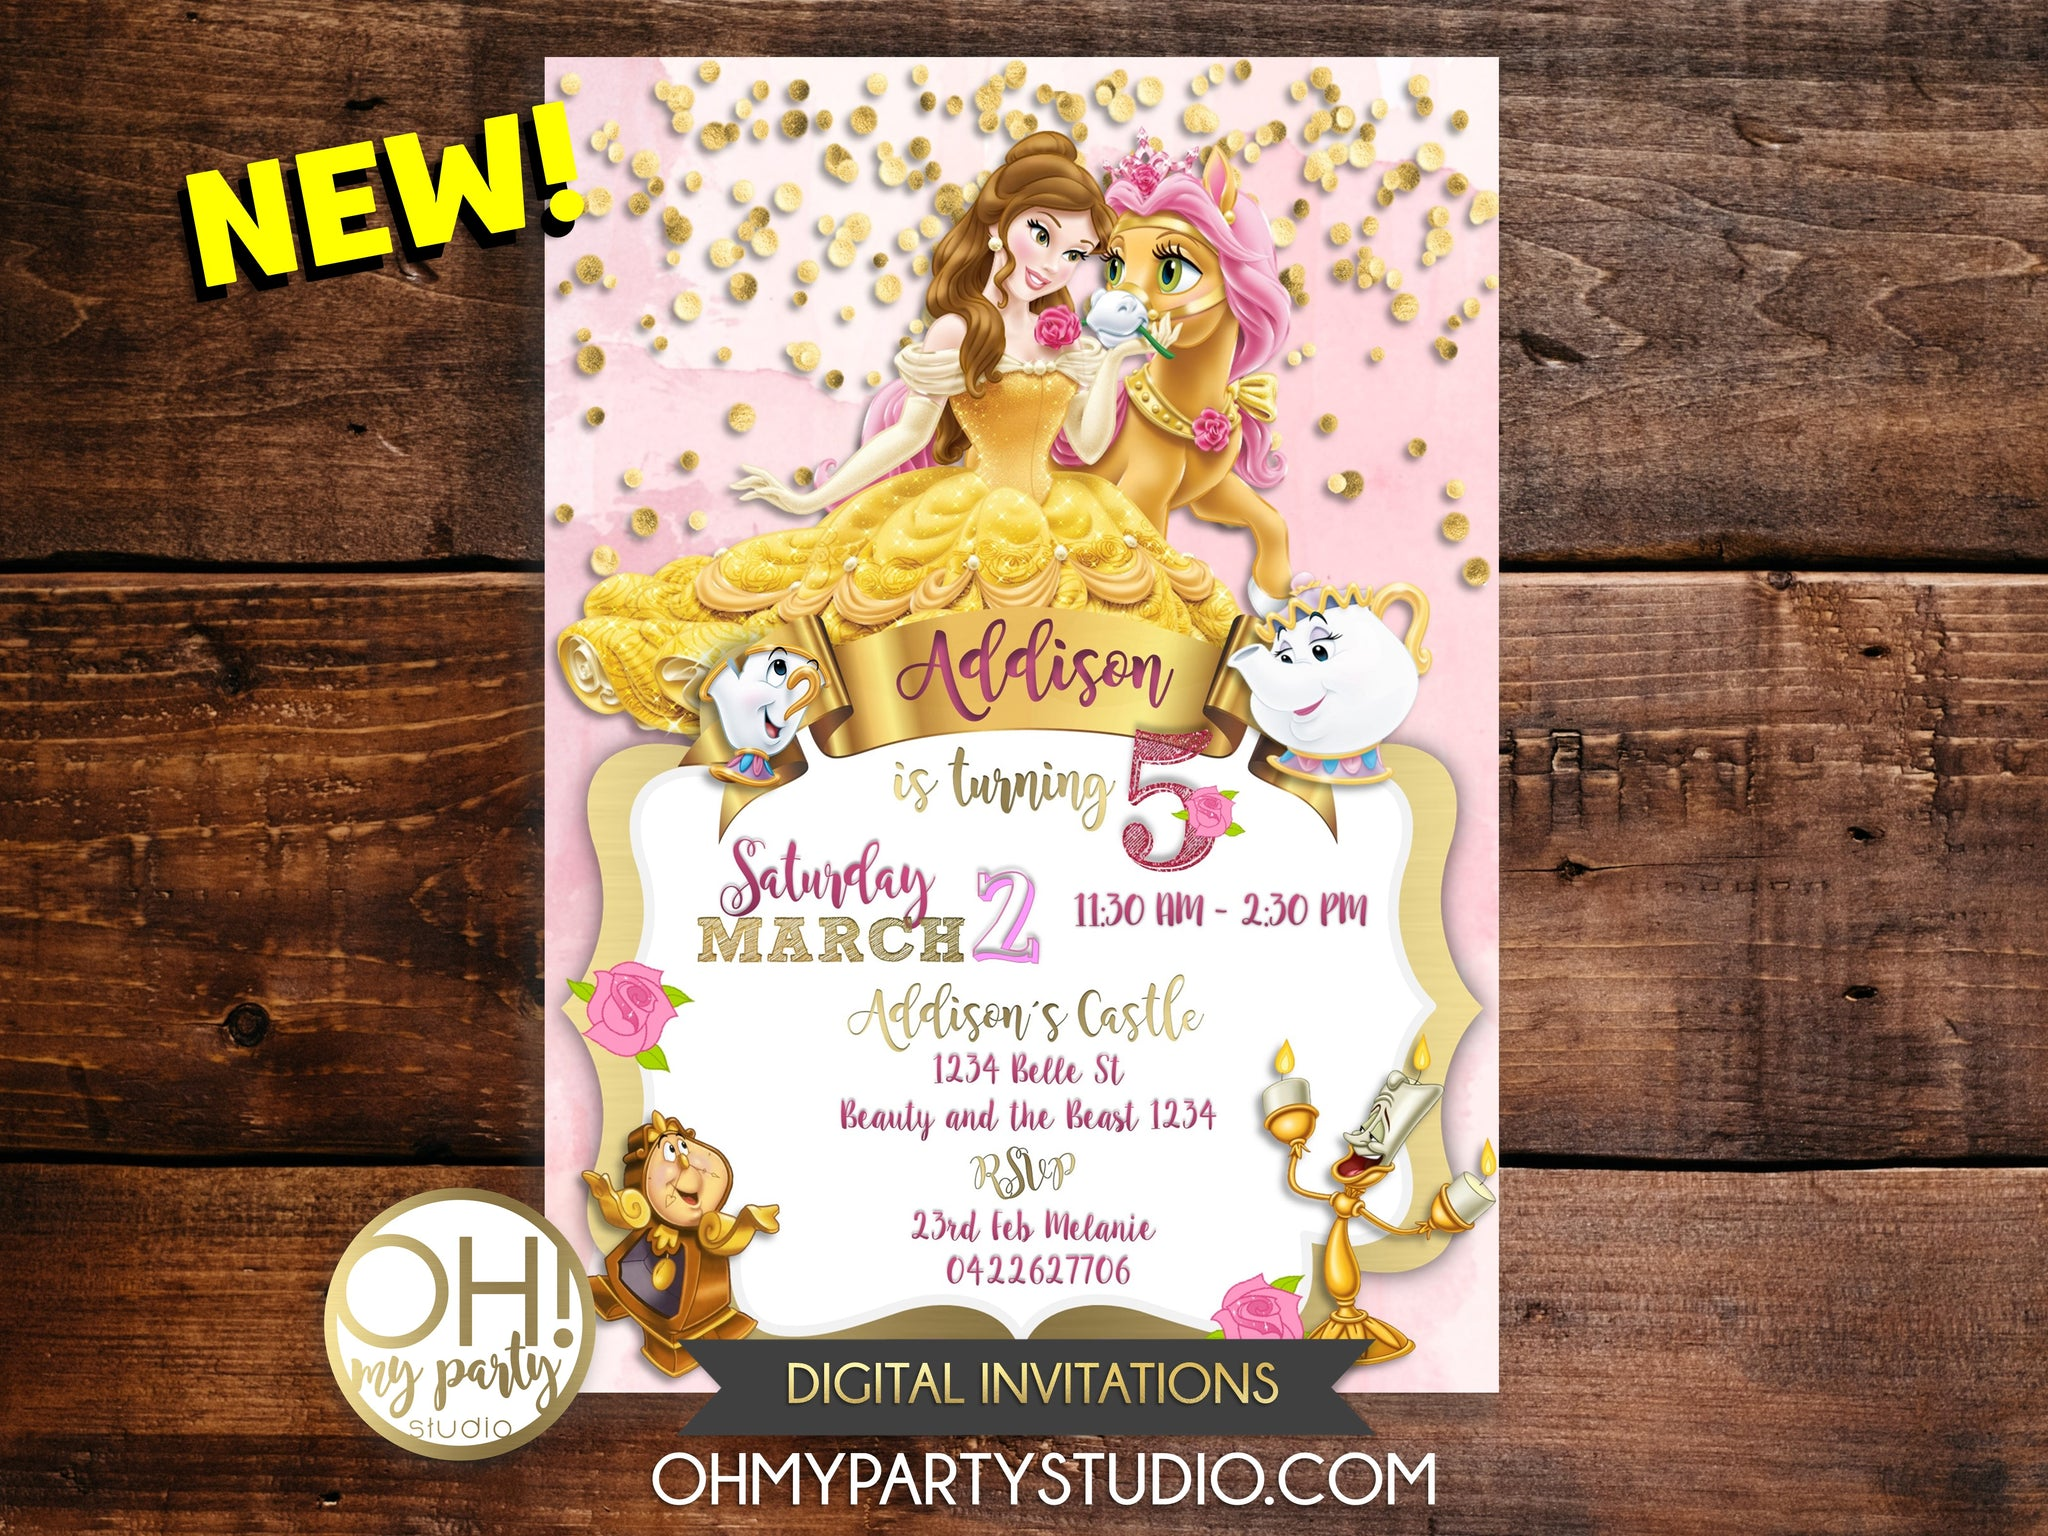 photograph regarding Free Printable Beauty and the Beast Birthday Invitations identify Splendor AND THE BEAST BIRTHDAY INVITATION